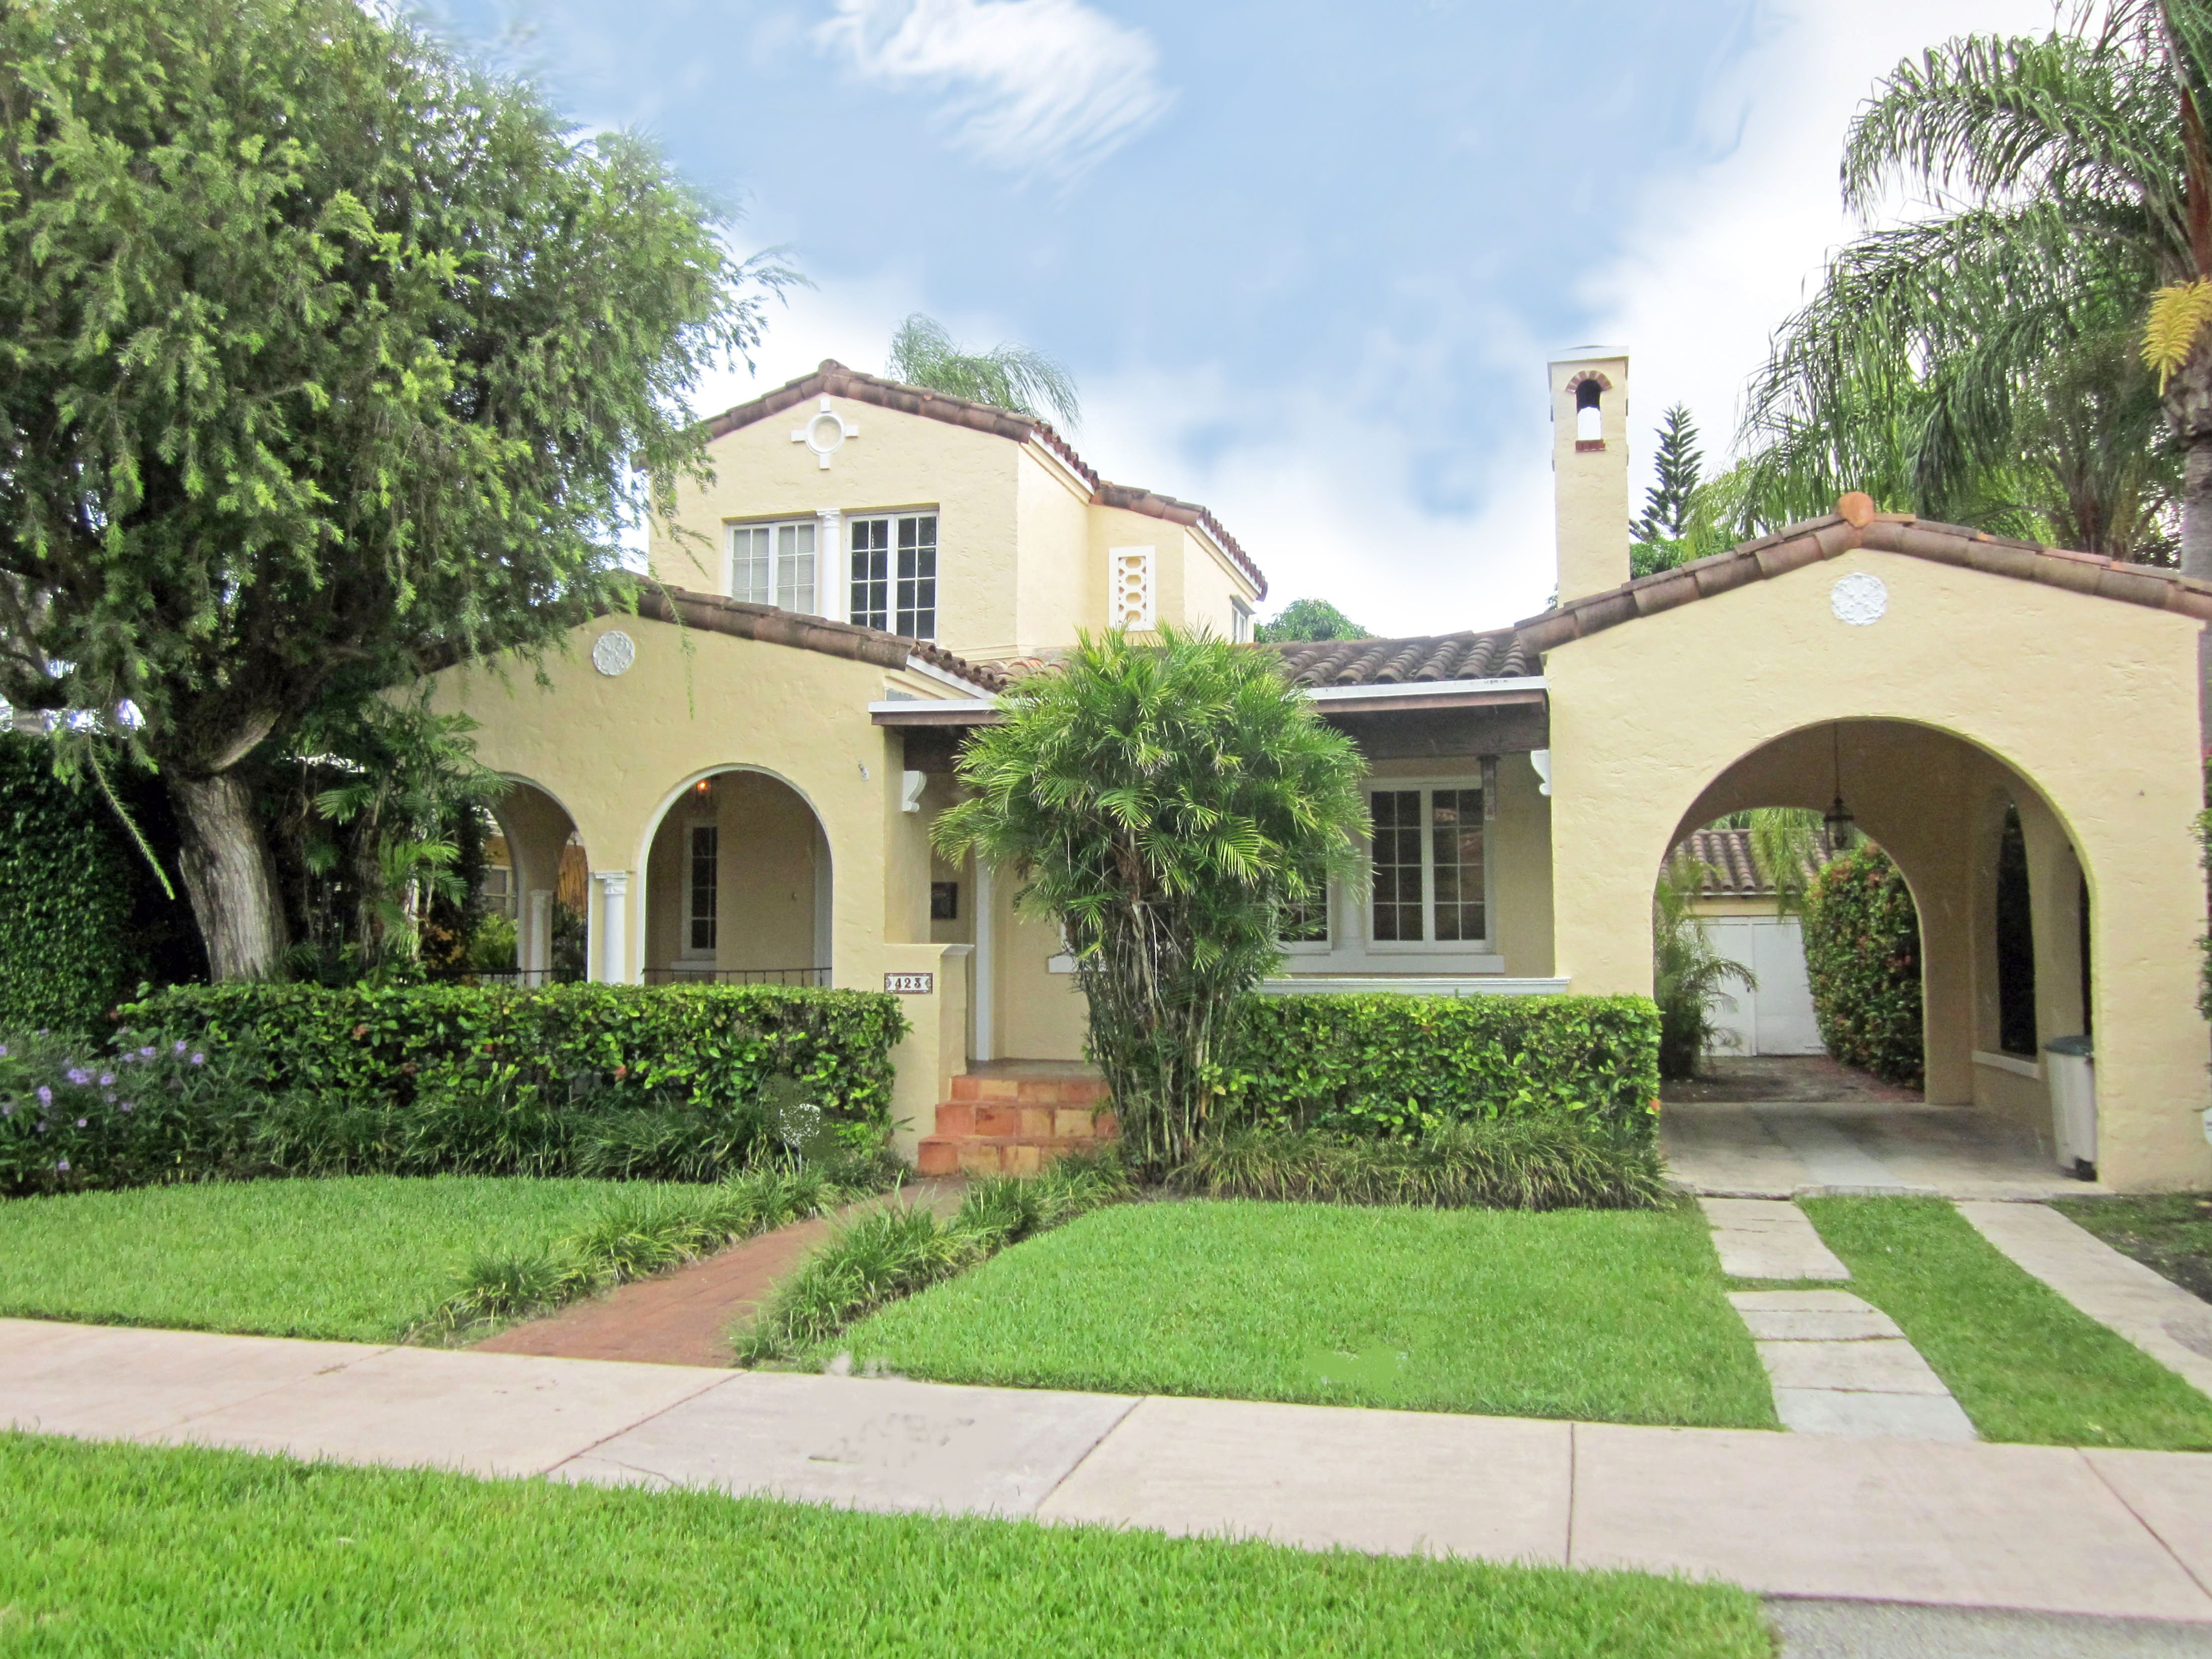 Sold Charming Front Porch On This 1926 Old Spanish 423 Candia Avenue Coral Gables Fl 33134 Http Slesnic Spanish Style Homes Spanish Exterior Spanish Style